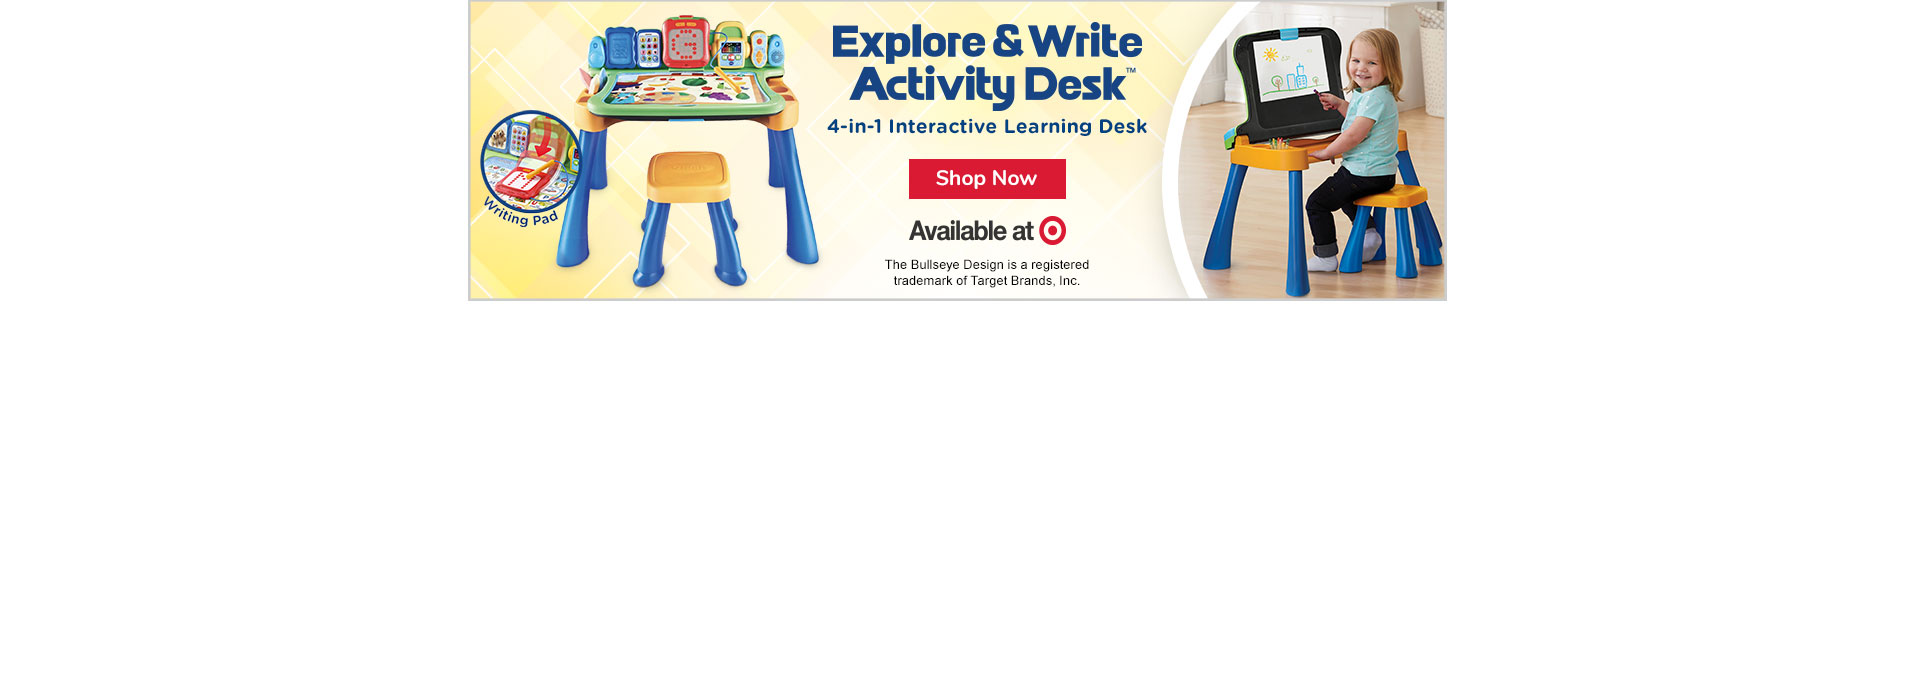 Check out the Explore & Write Activity Desk - Available at Target